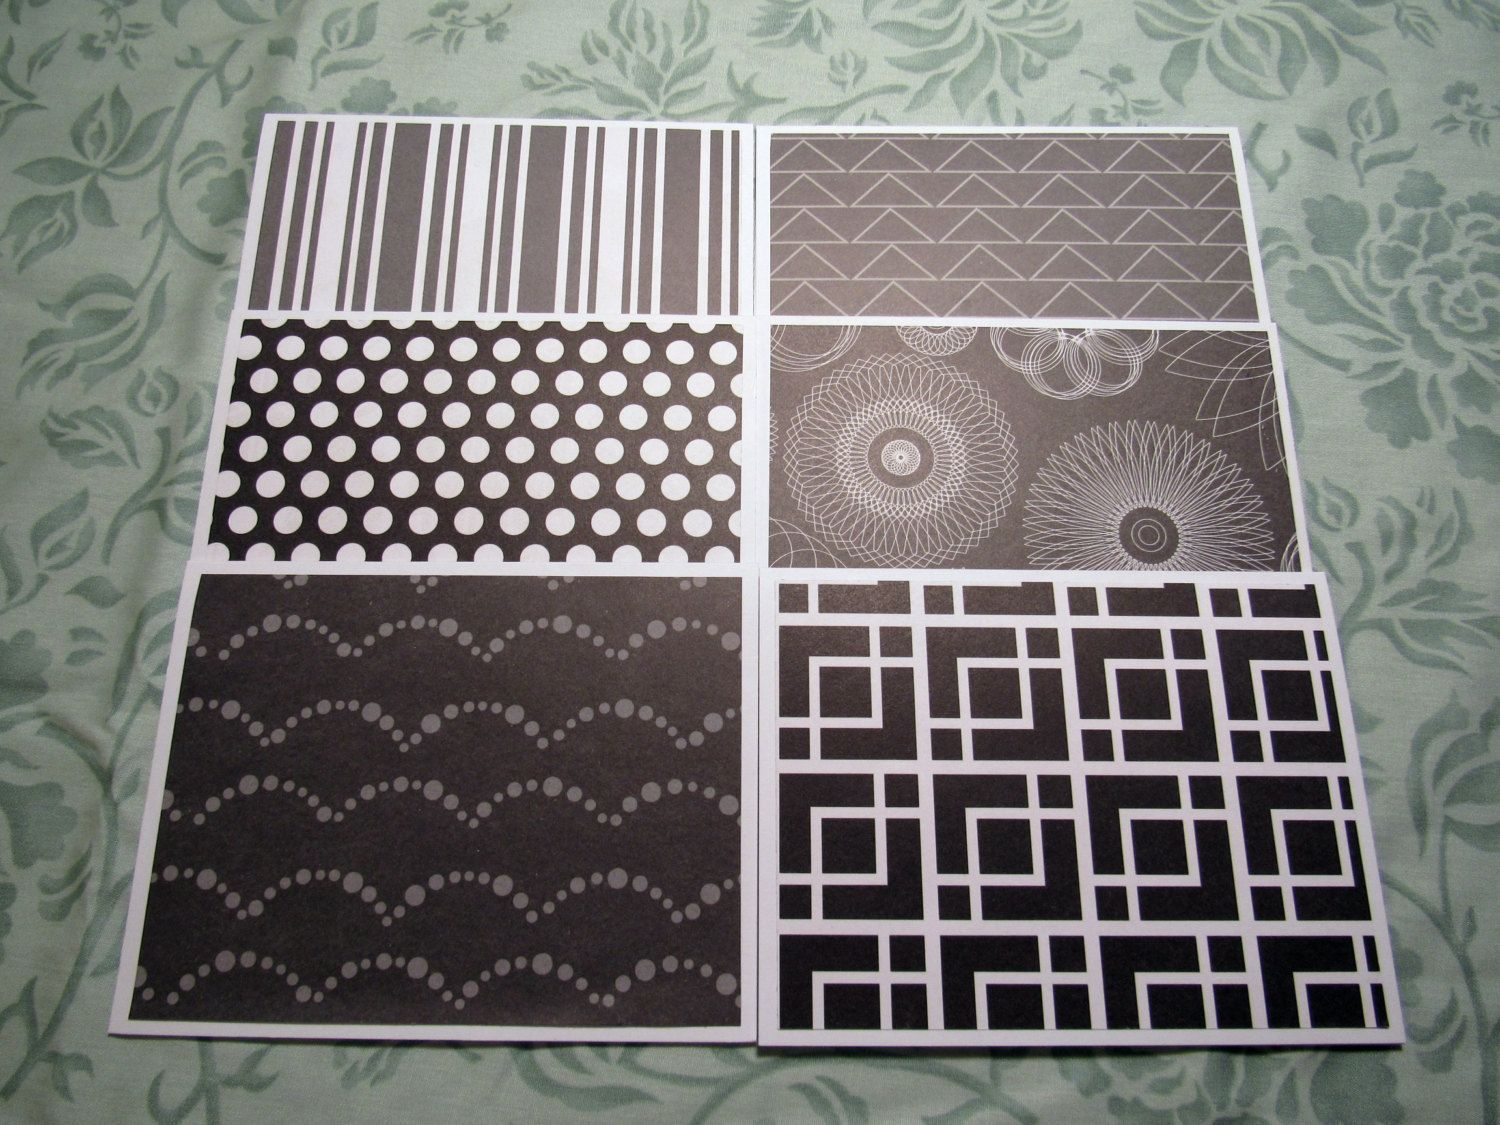 Black Grey Gray and White Handmade Note Cards Thank You Cards Set of 5 with Envelopes by WillowbendCottage on Etsy